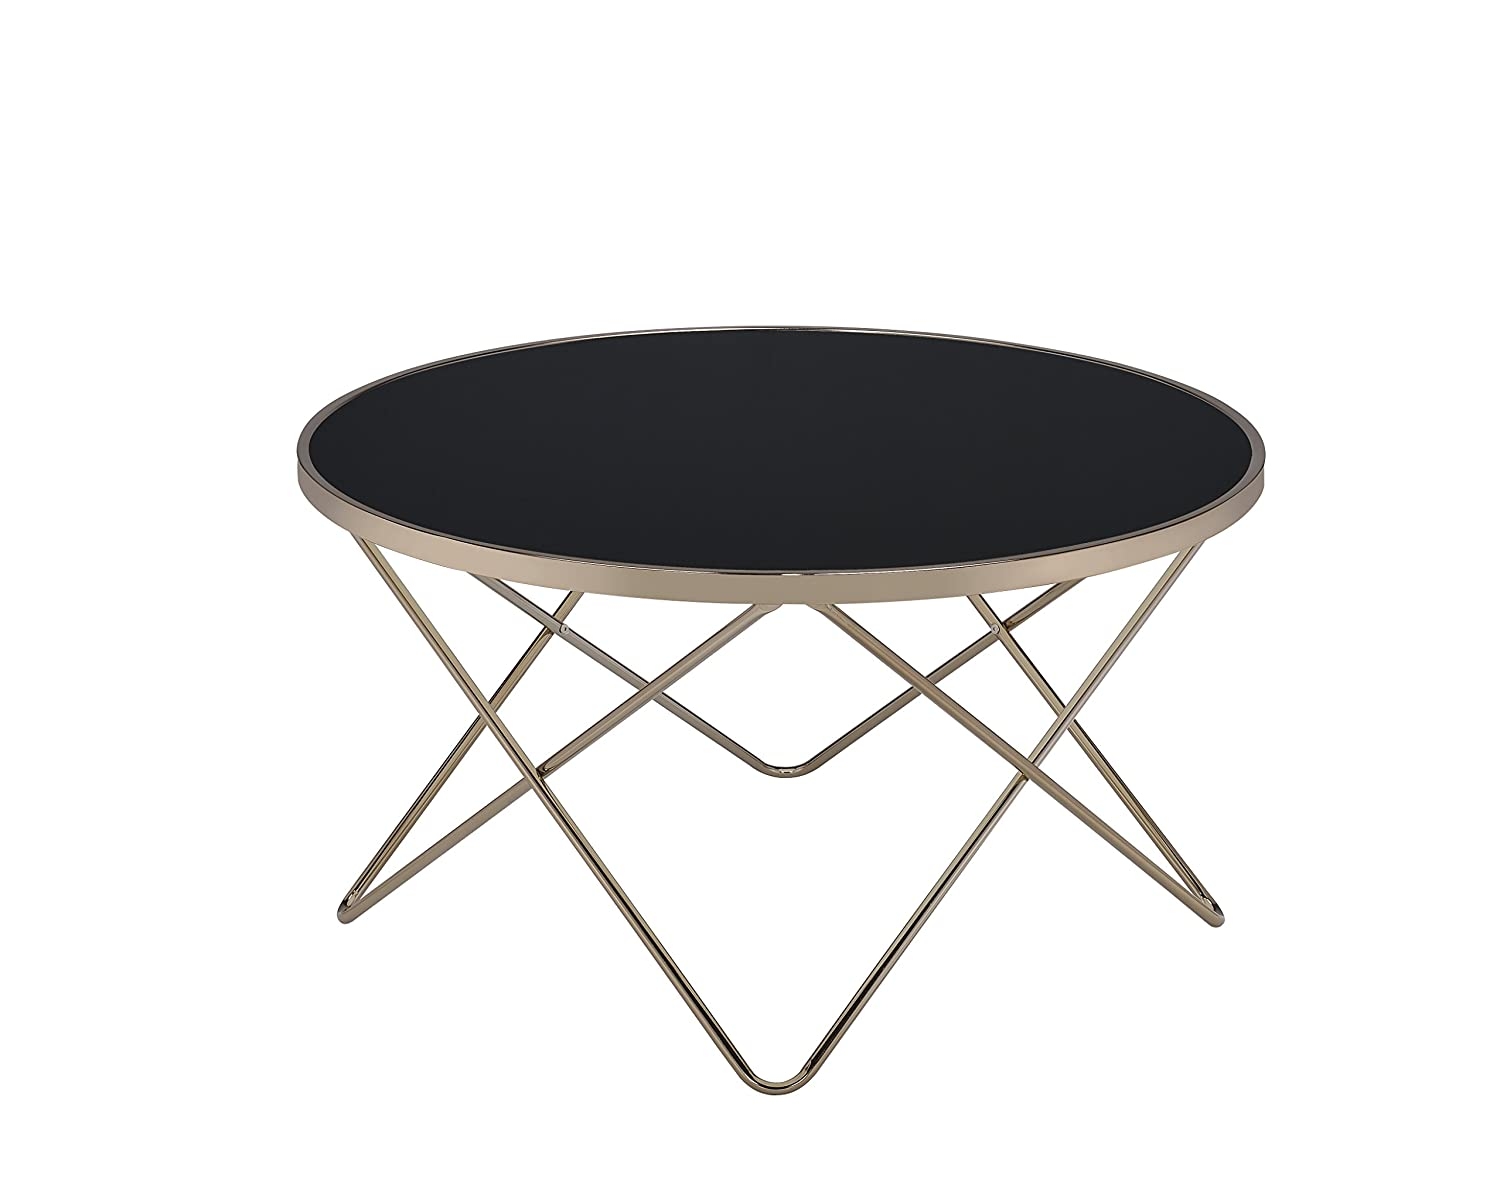 ACME Furniture Acme 81830 Valora Coffee Table, Black Glass & Champagne, One Size